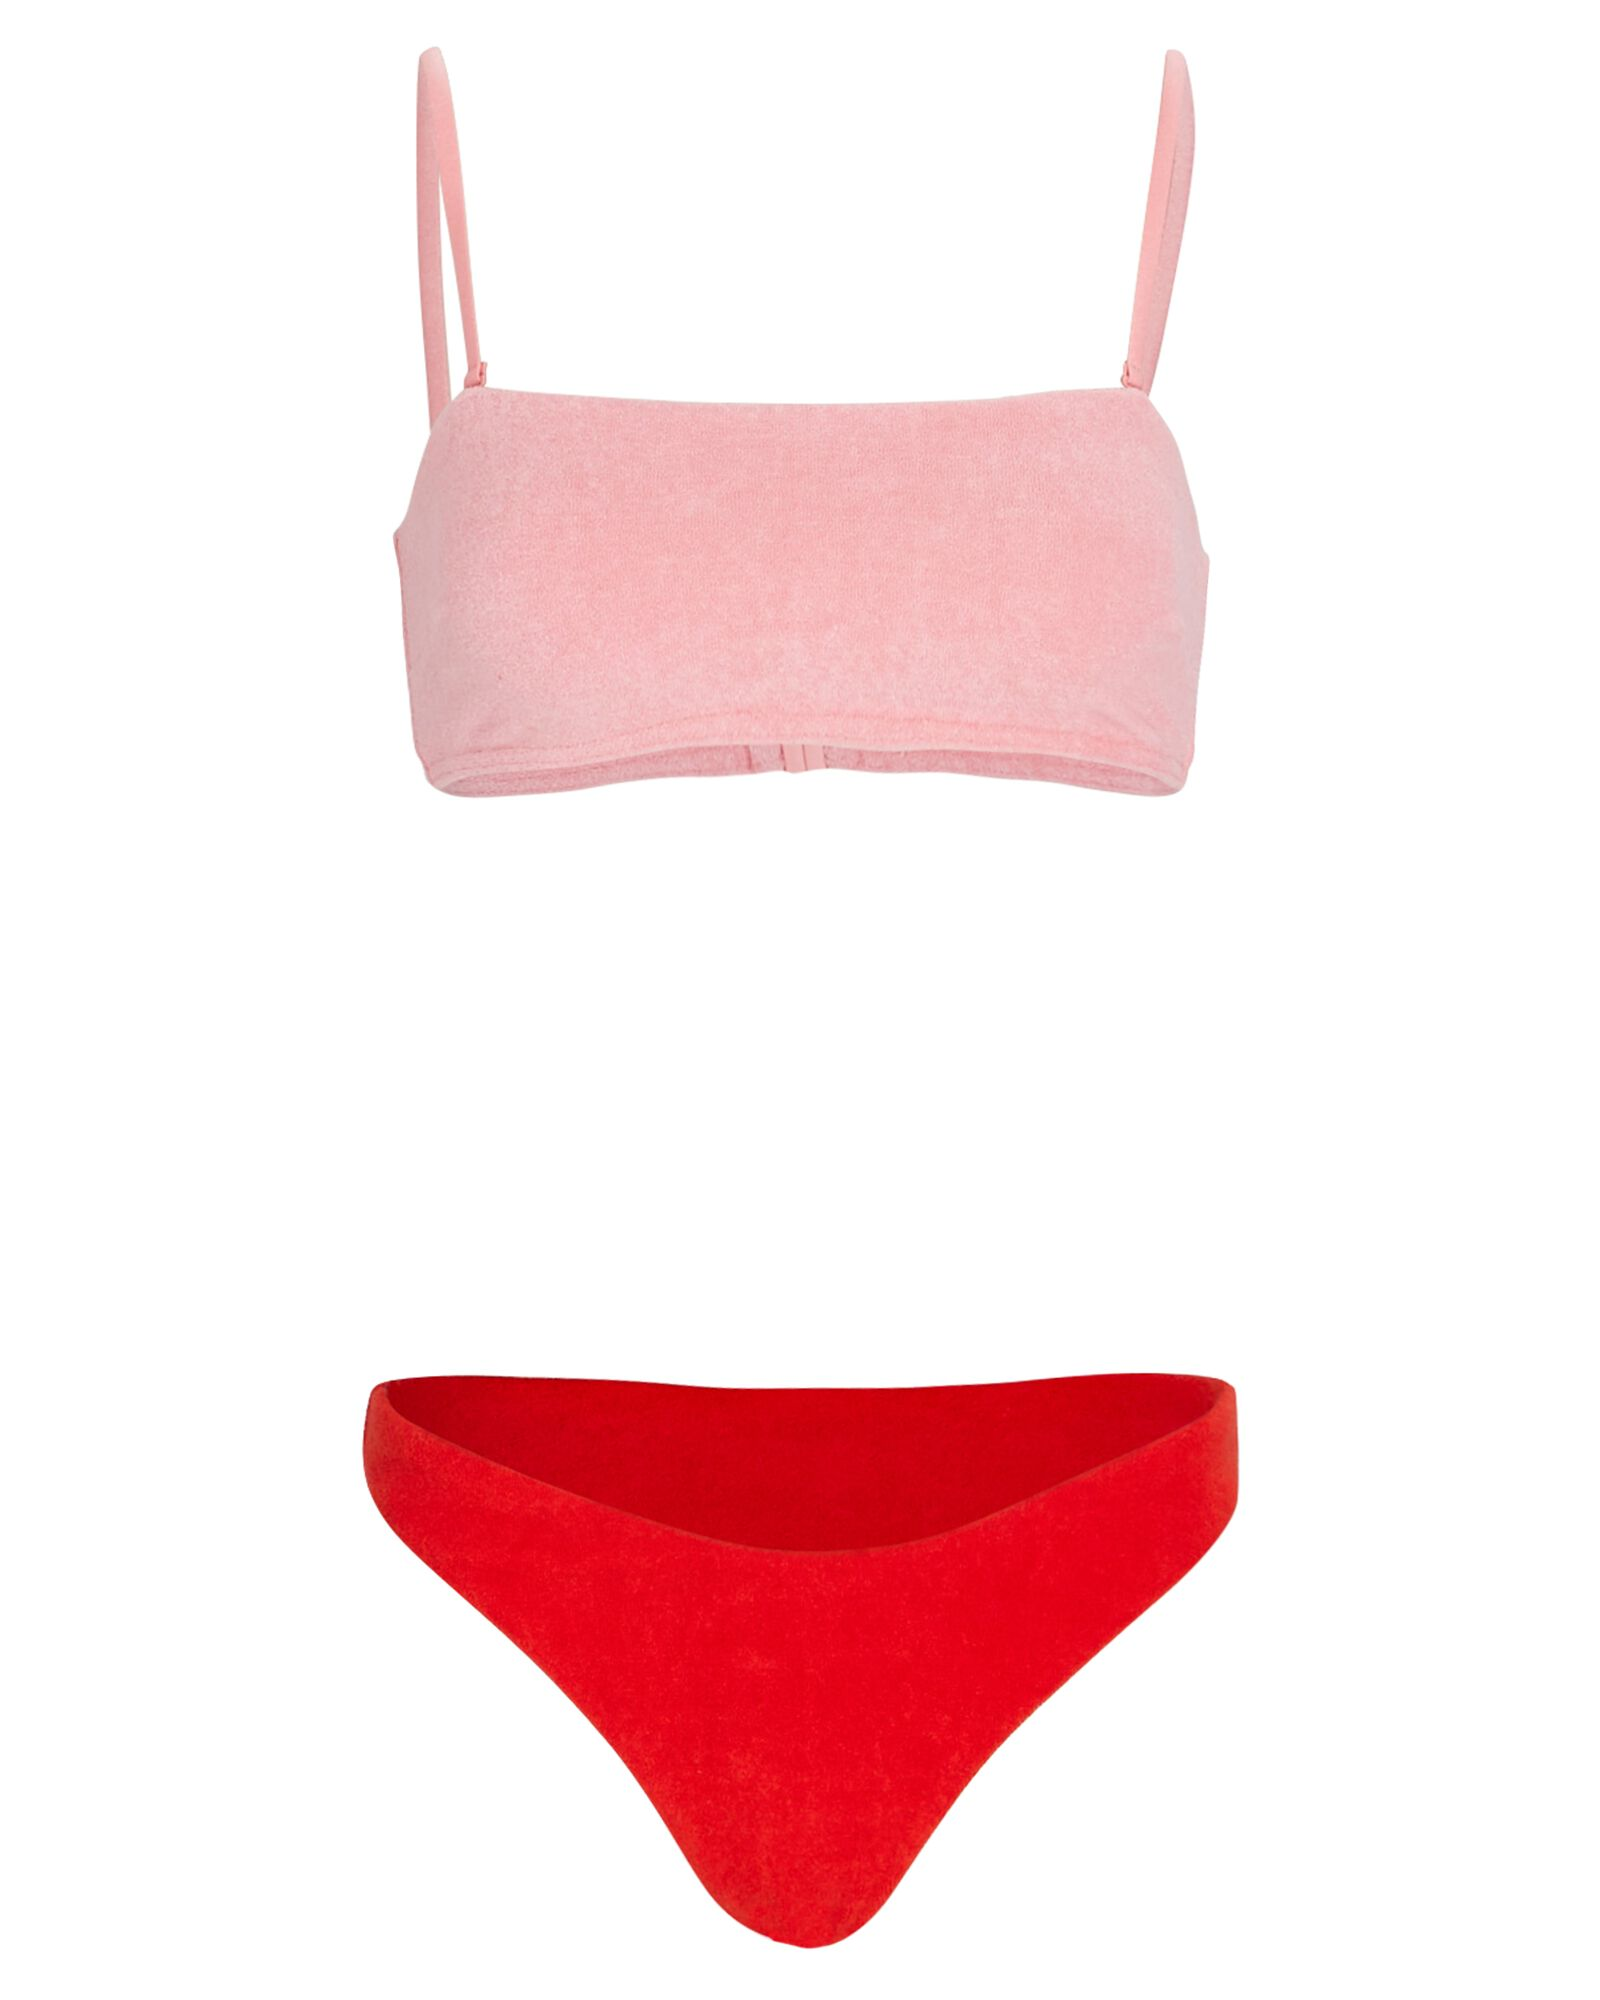 Poppy Terry Bandeau Bikini Set, PINK/RED, hi-res